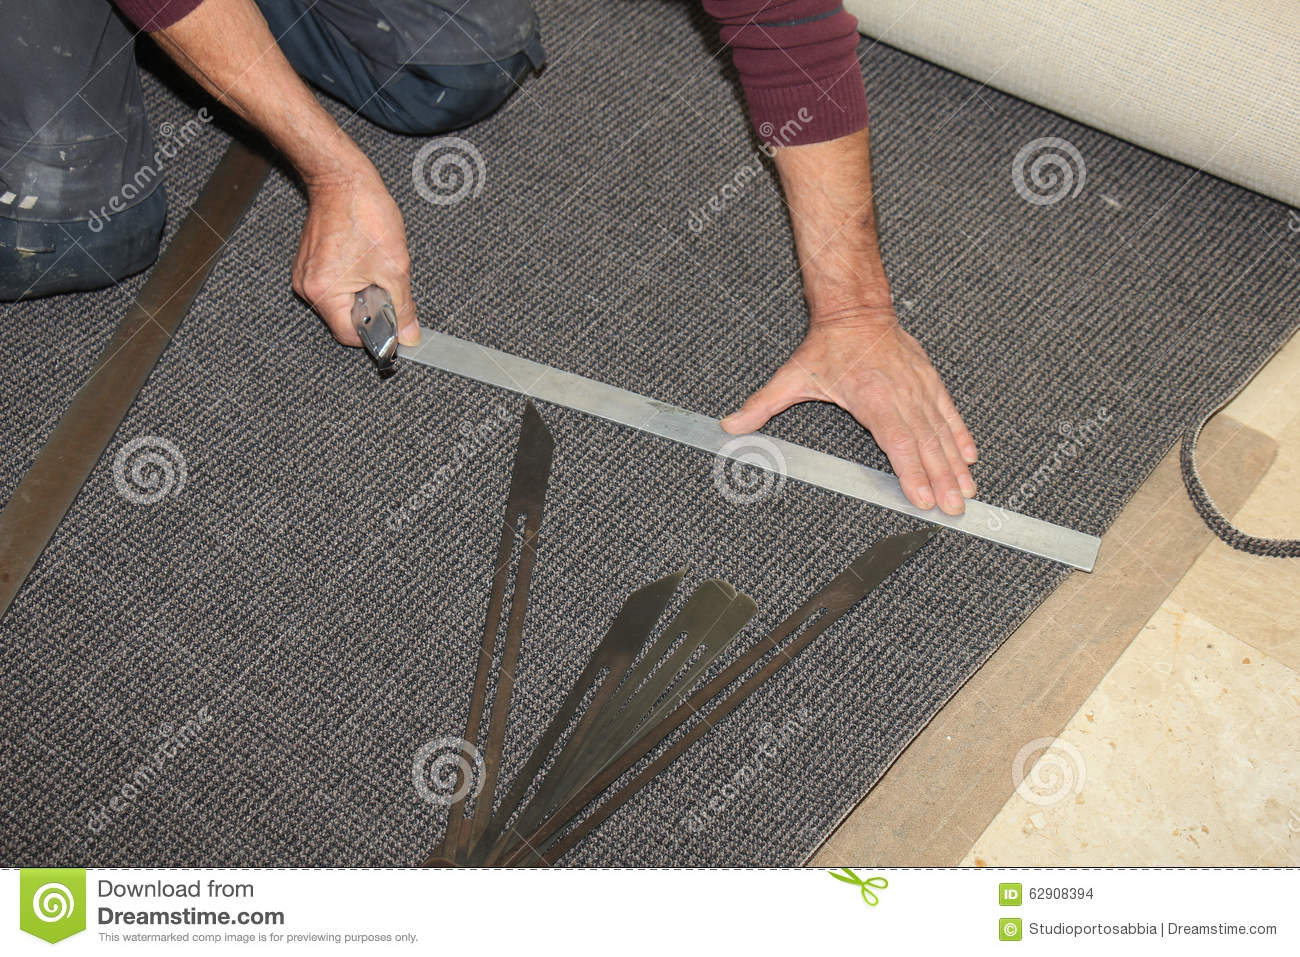 Carpeting a staircase